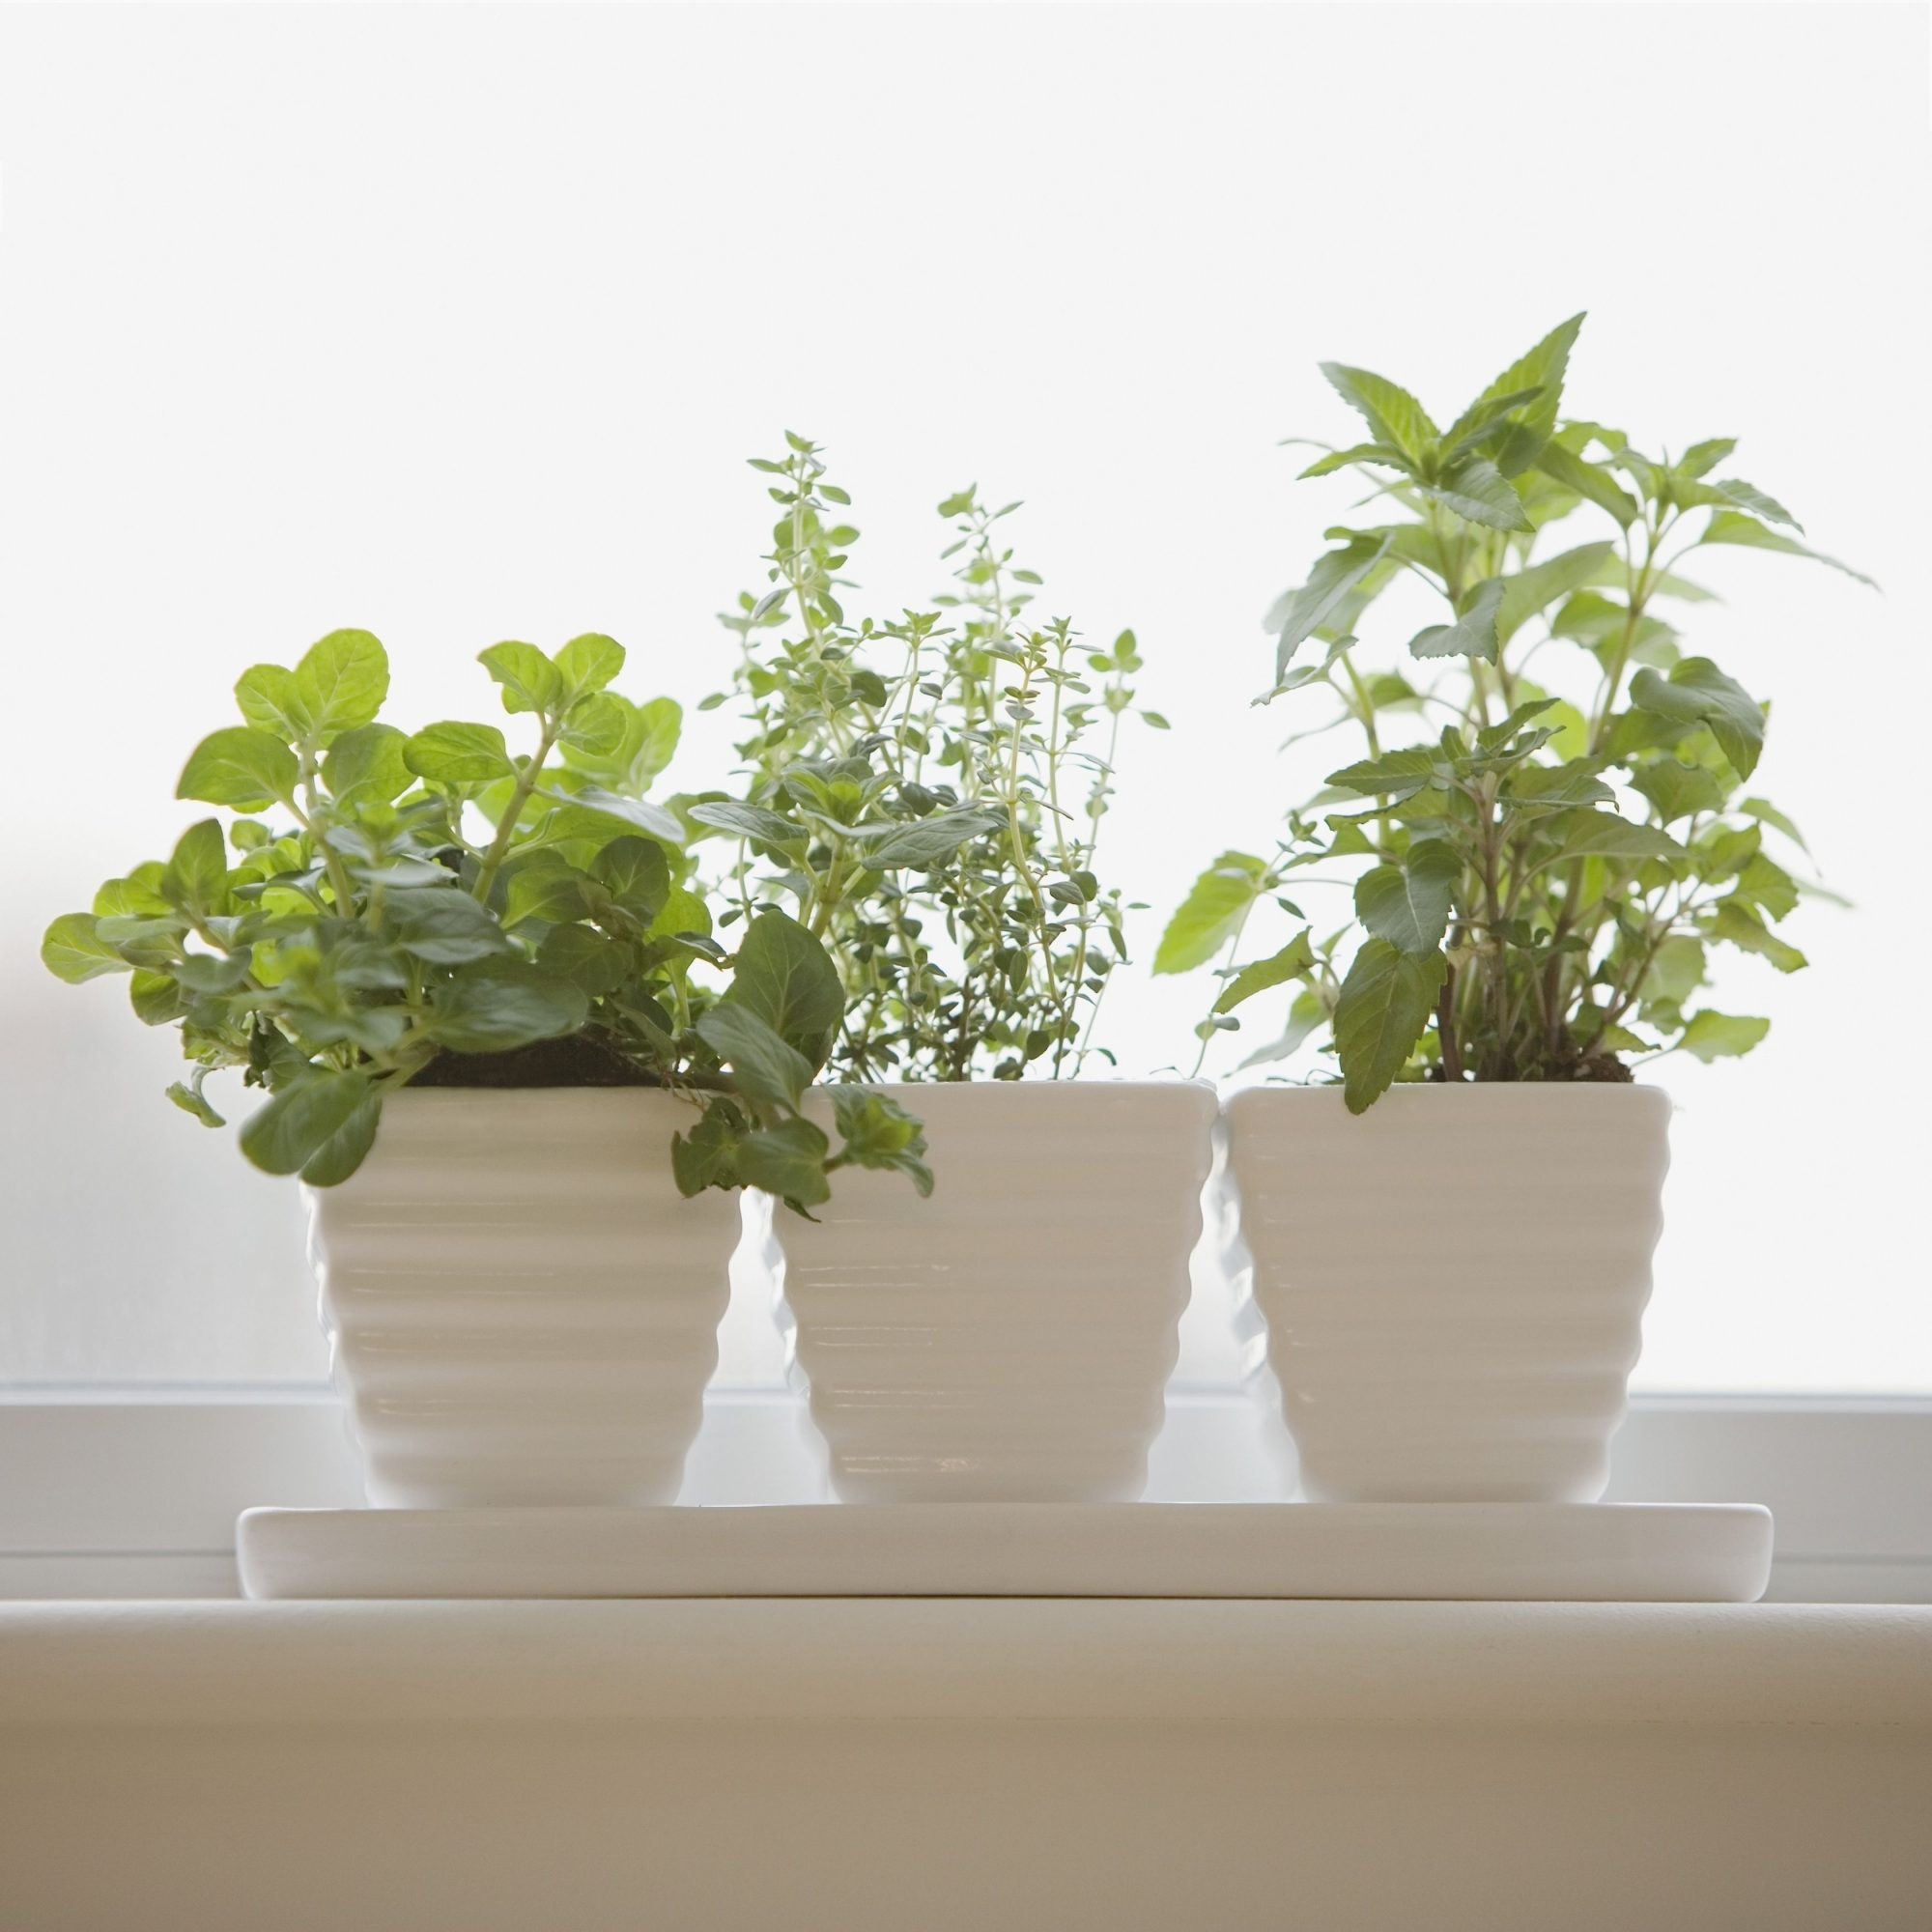 The Best Herbs to Grow in Your Windowsill